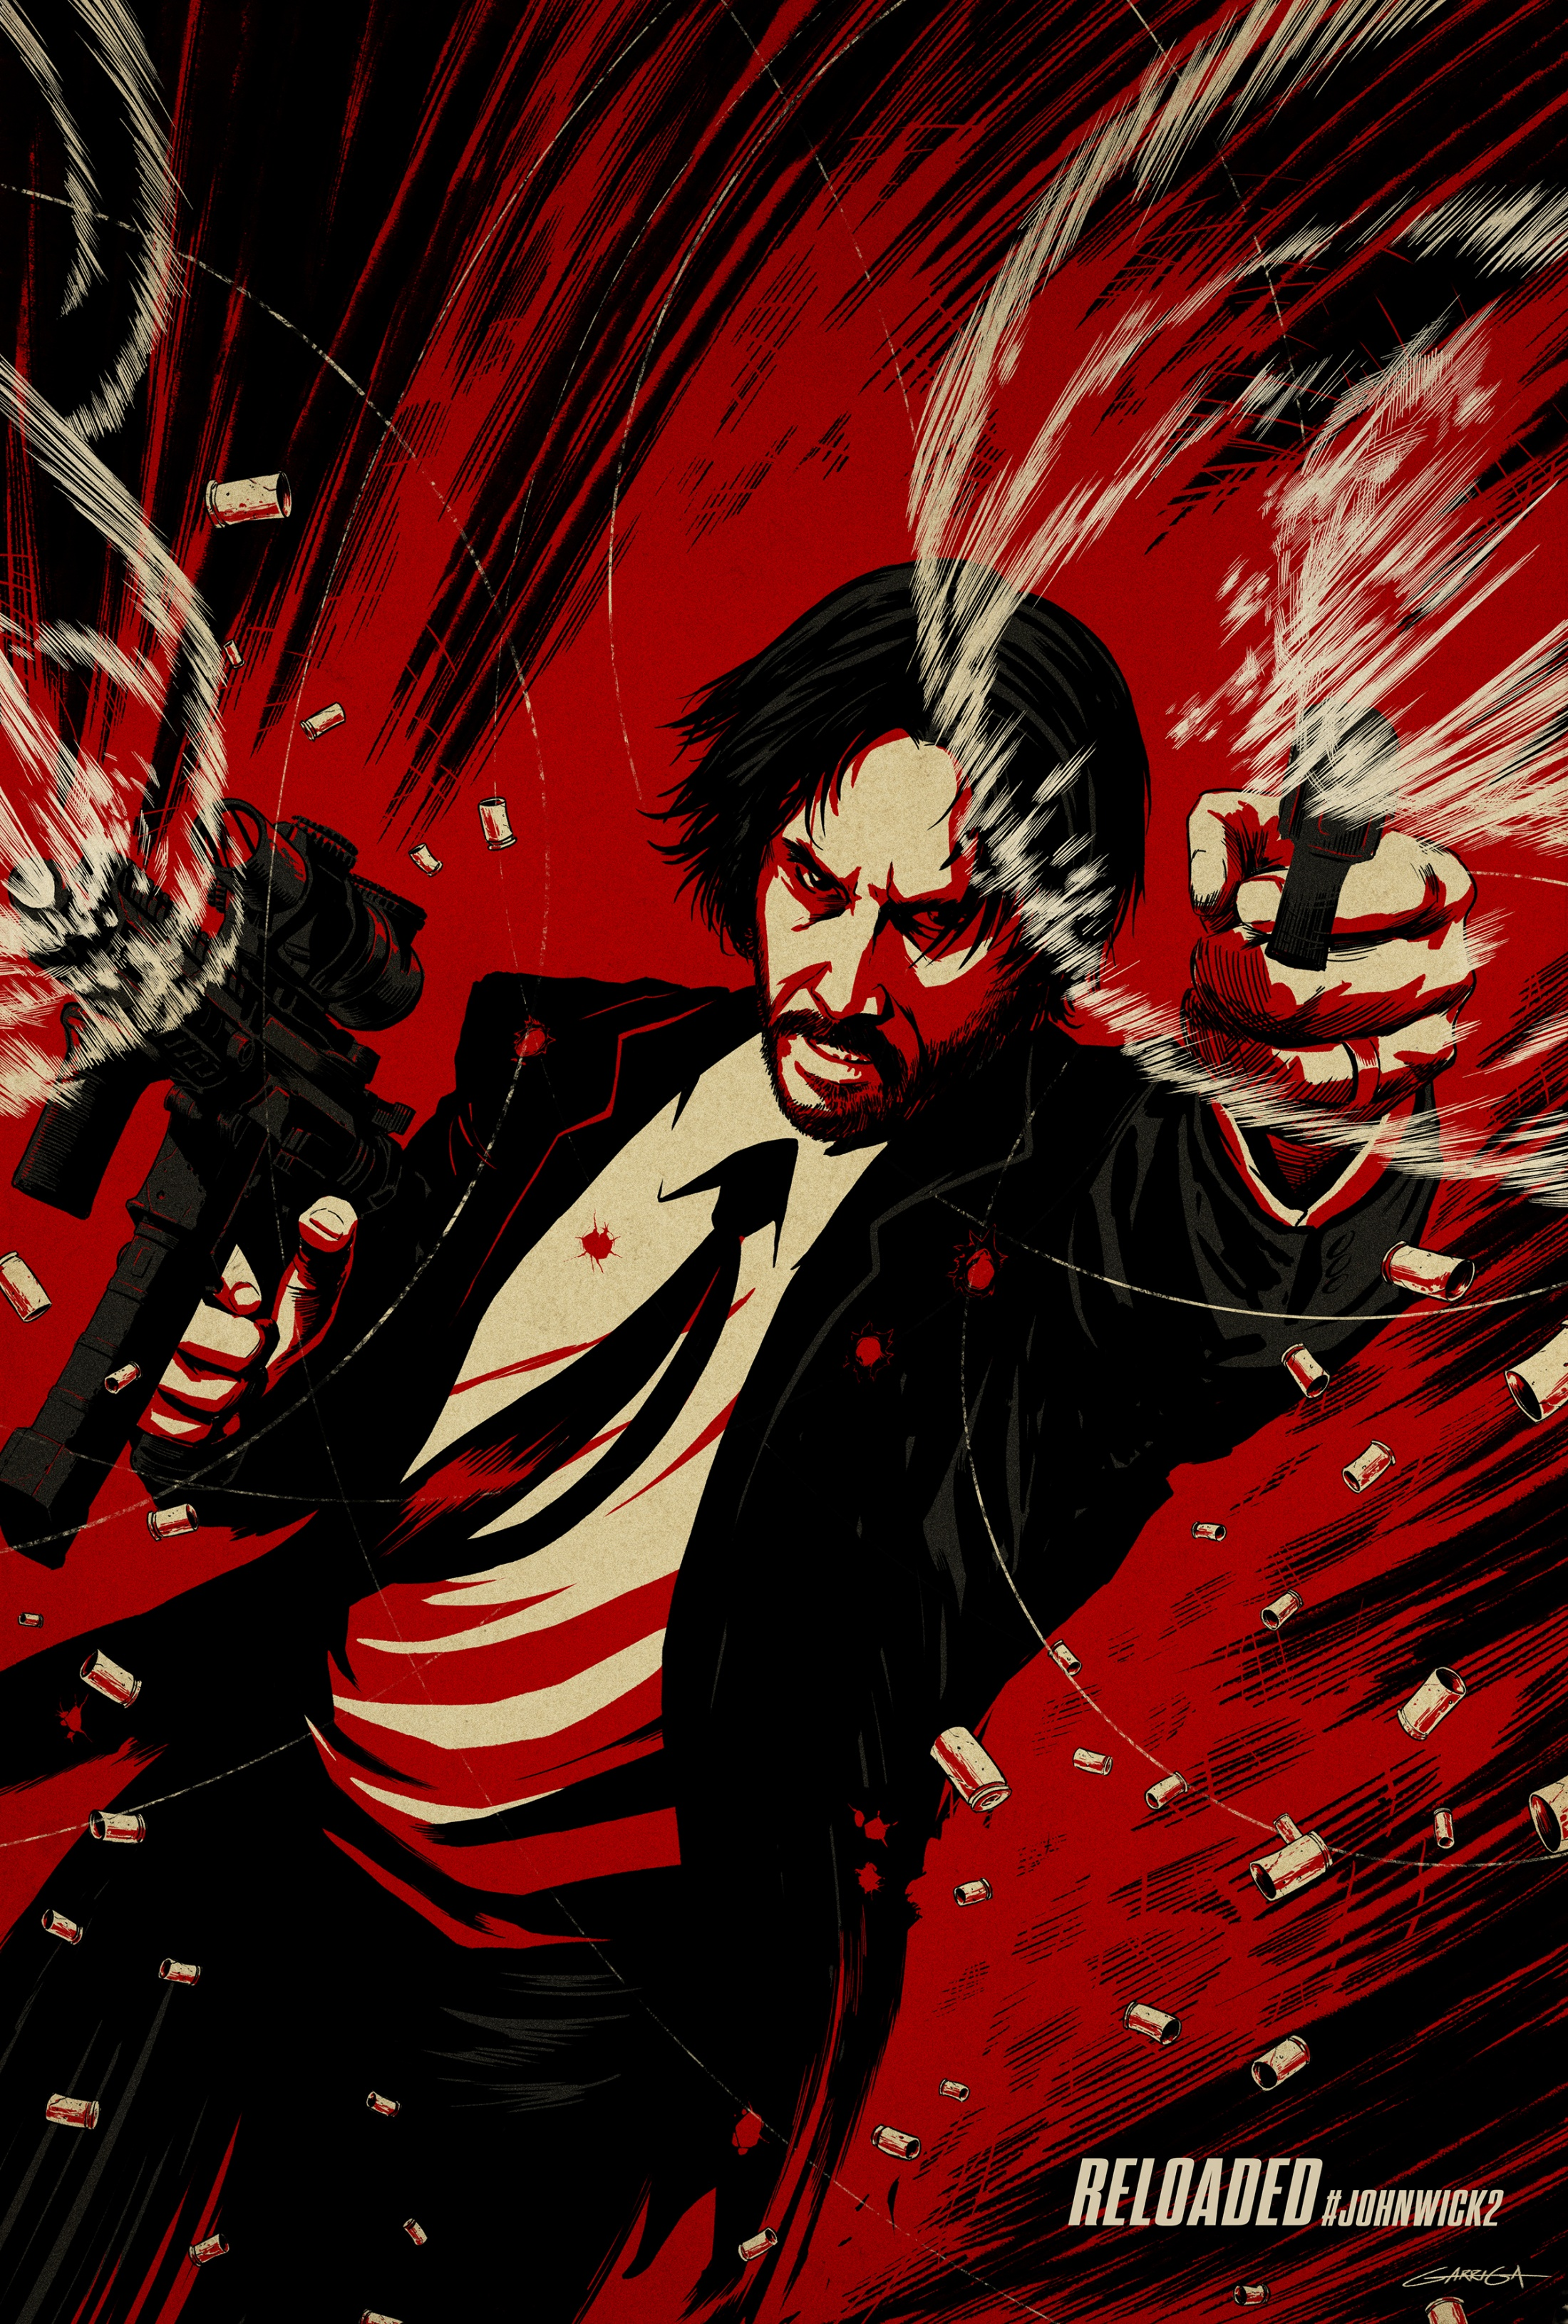 John Wick 2 - Illustrated One-Sheet Campaign - BG | Clios